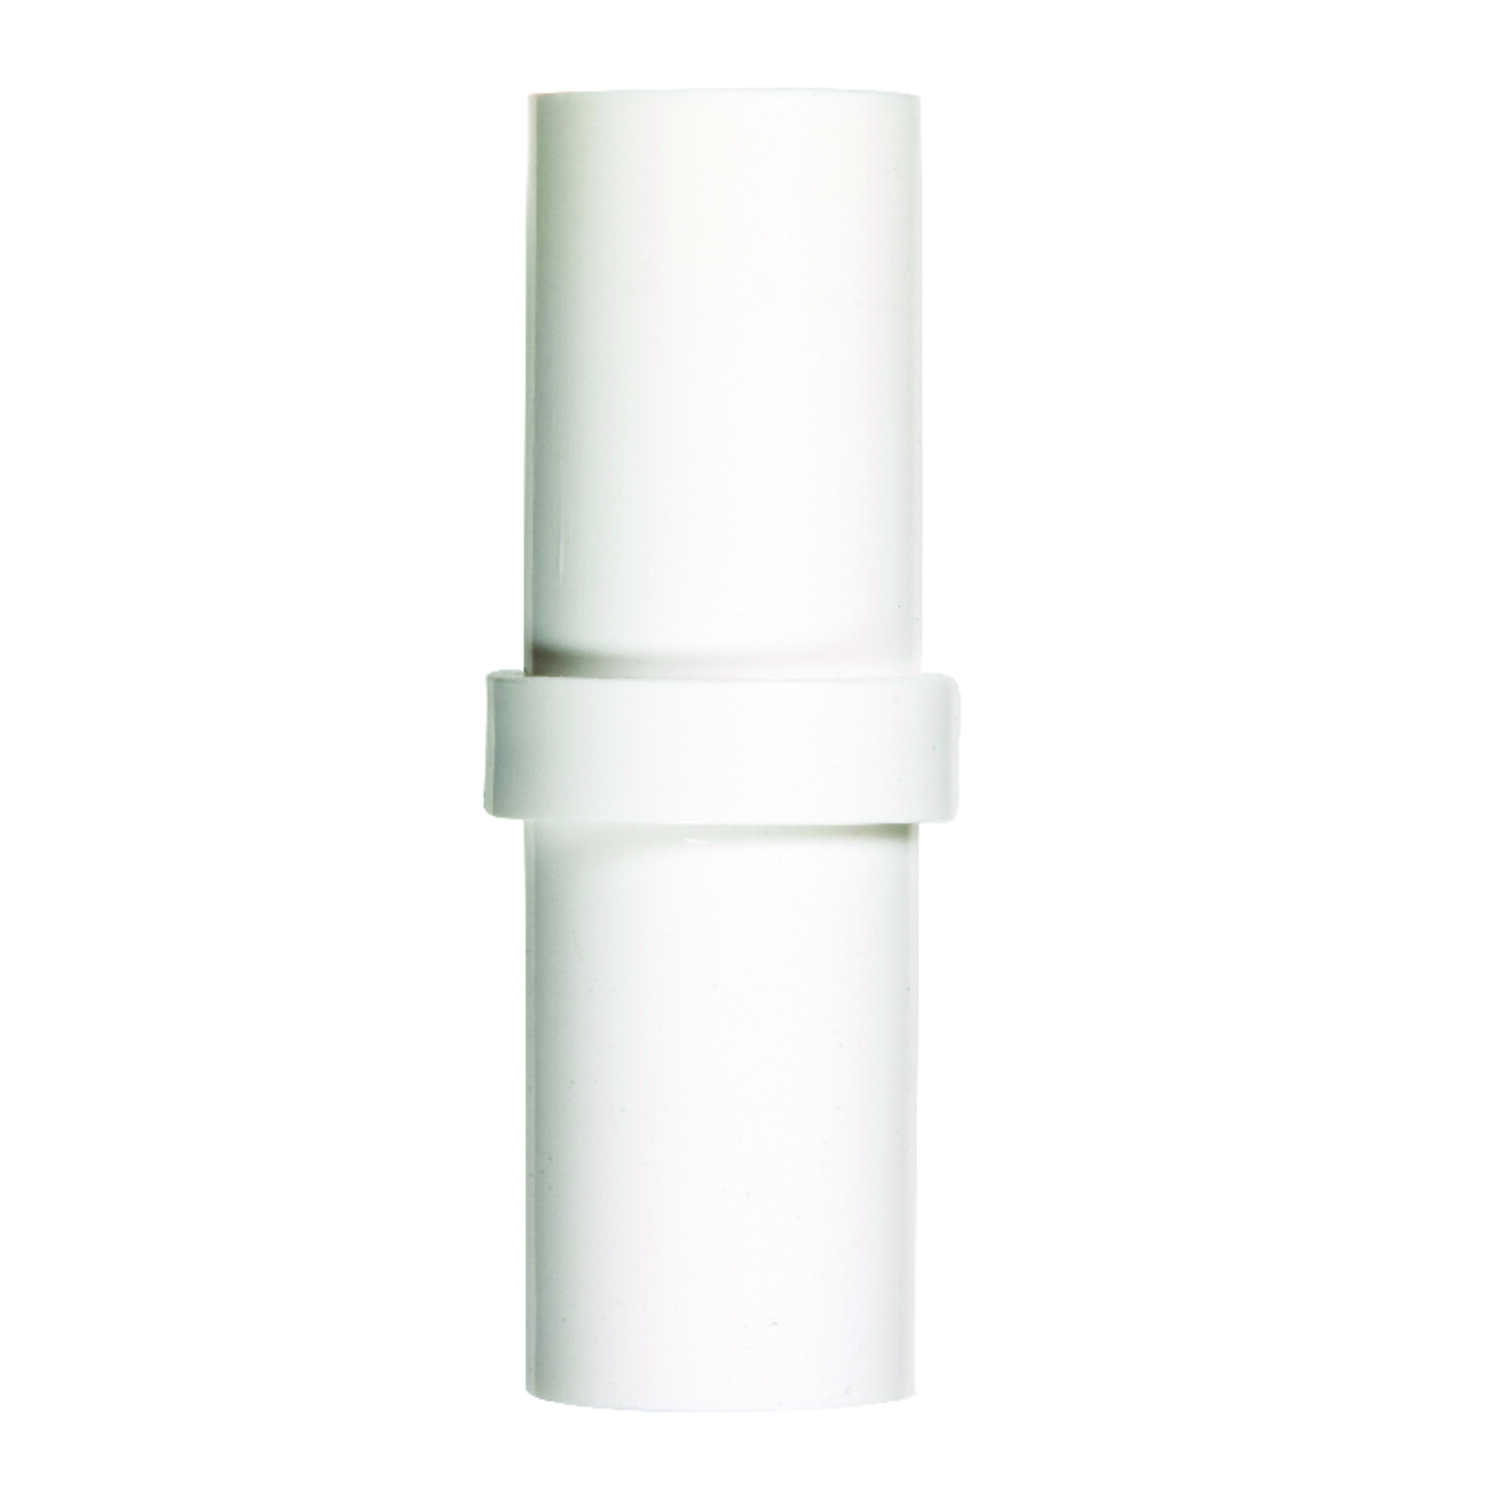 Campbell  PVC  Well Point  1-1/4 in.  x 5 in. L